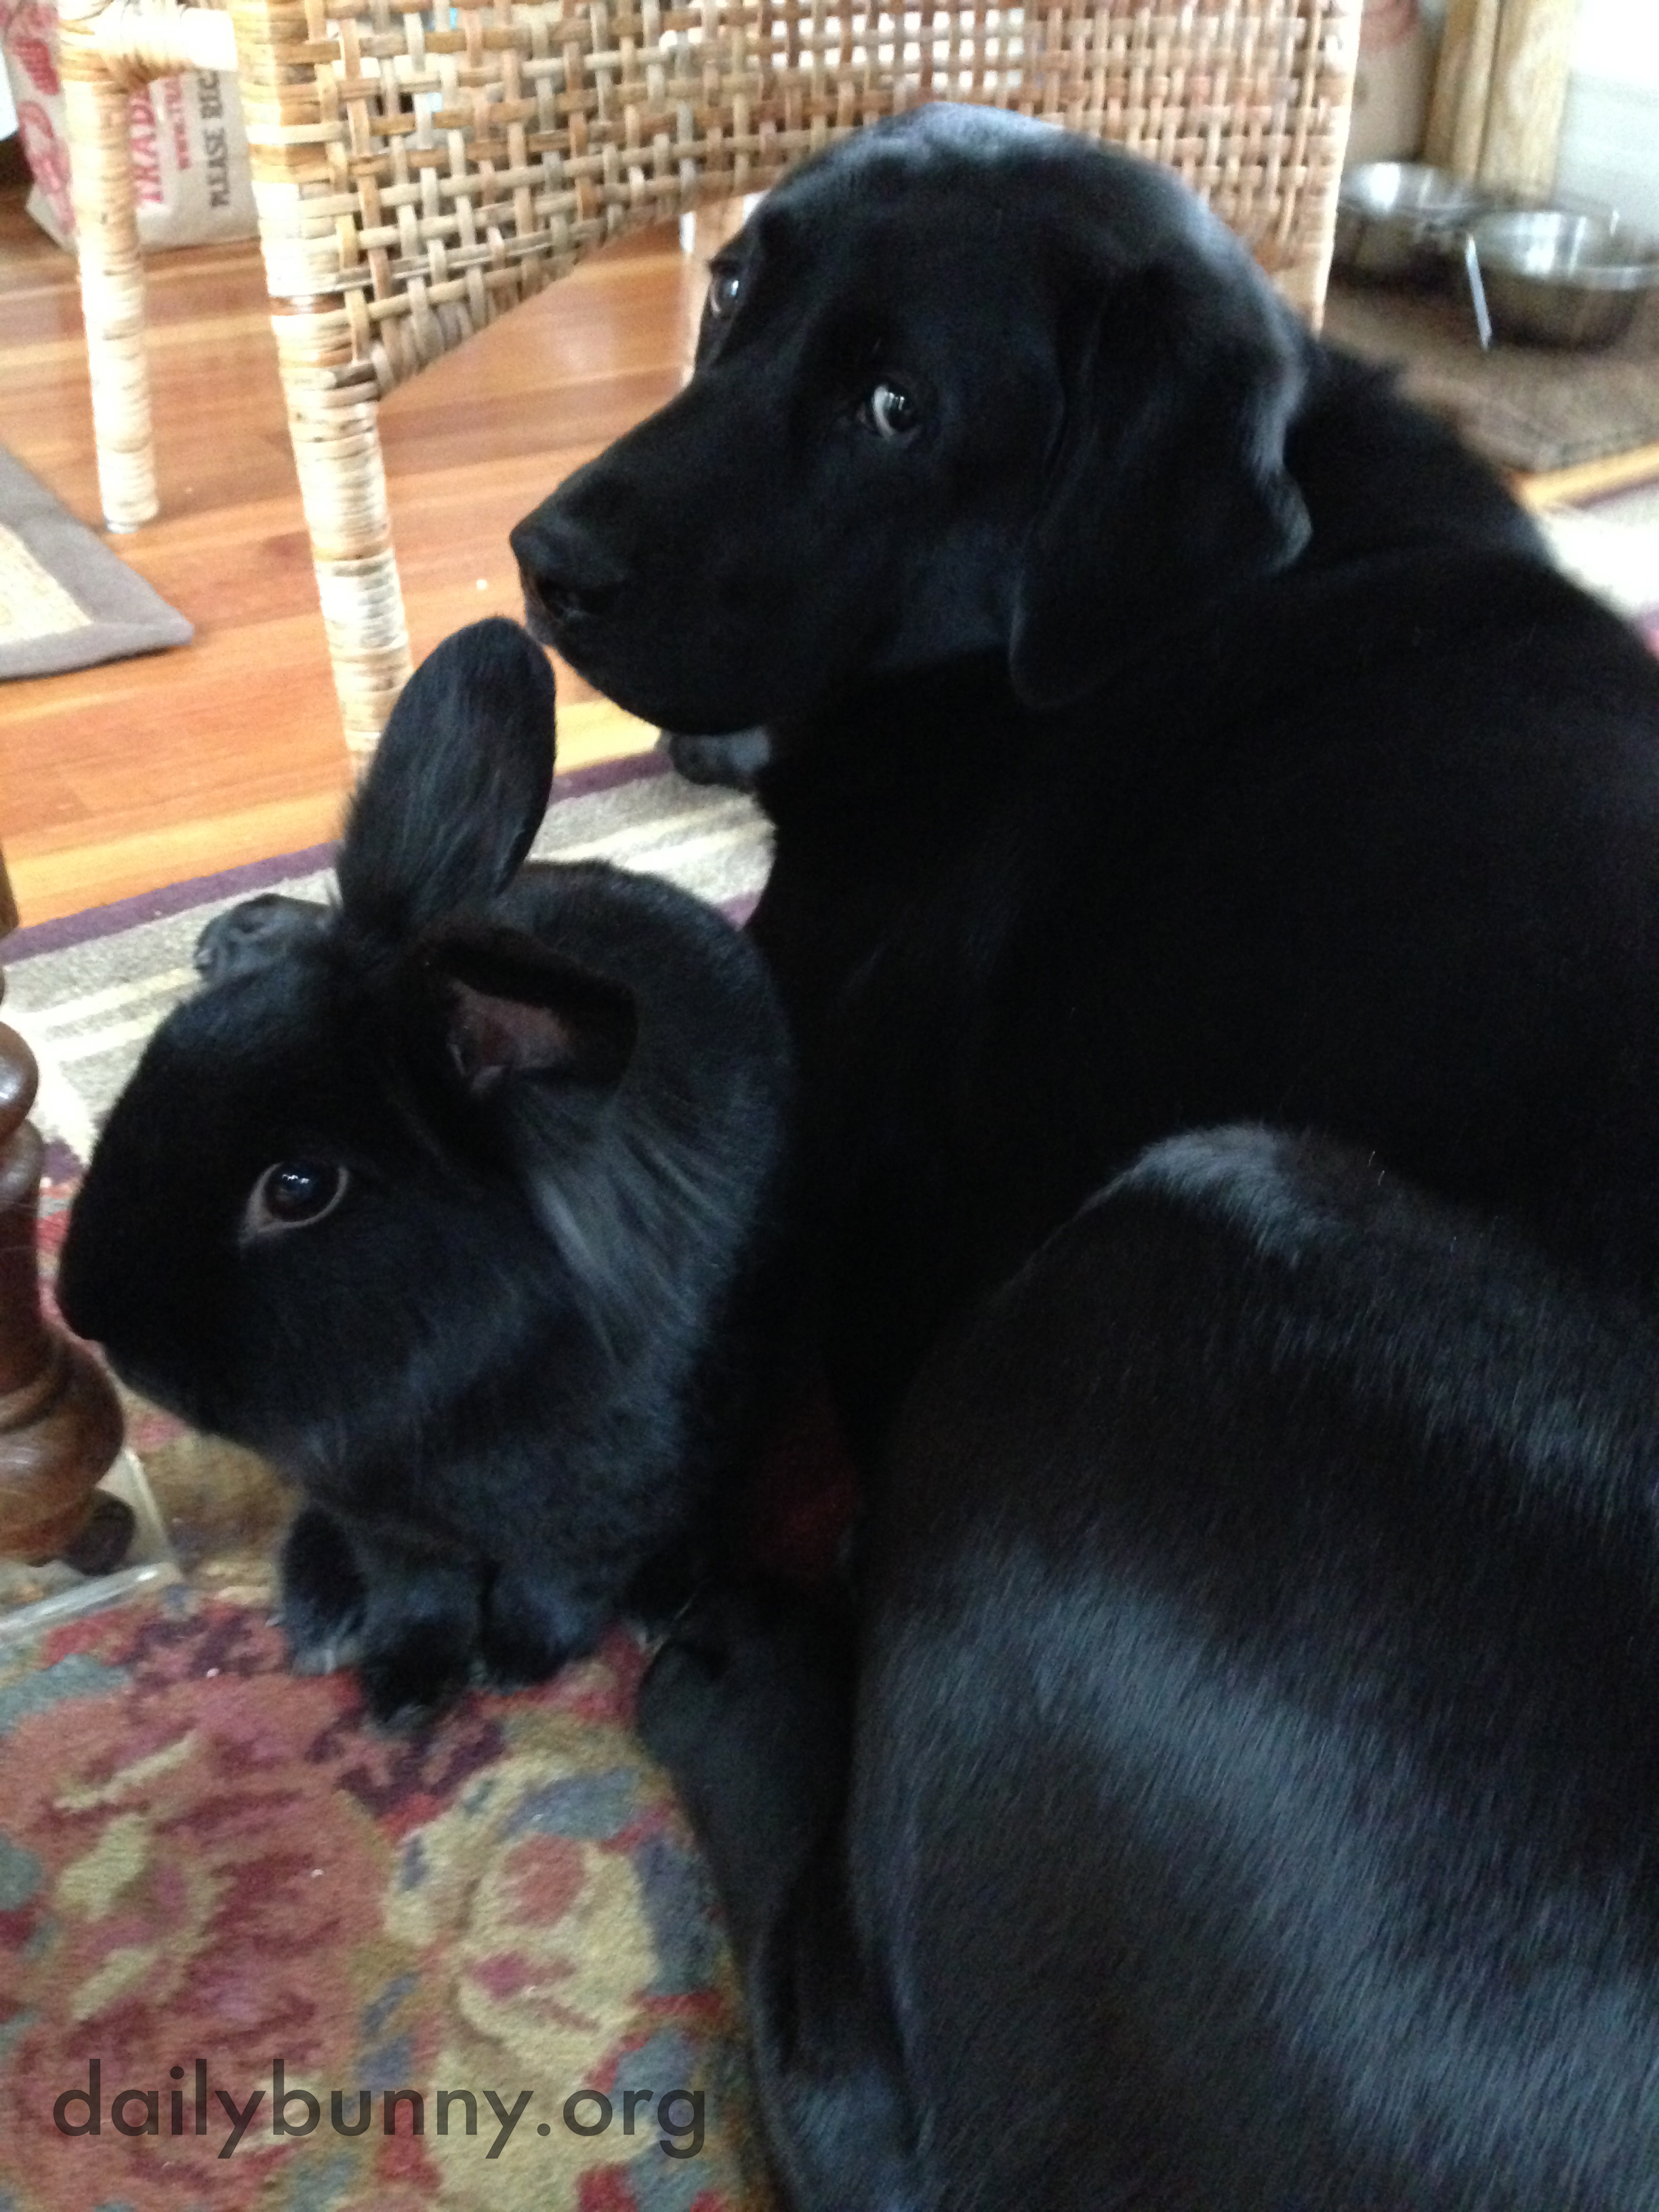 Bunny and His Dog Friend Are Two of a Kind